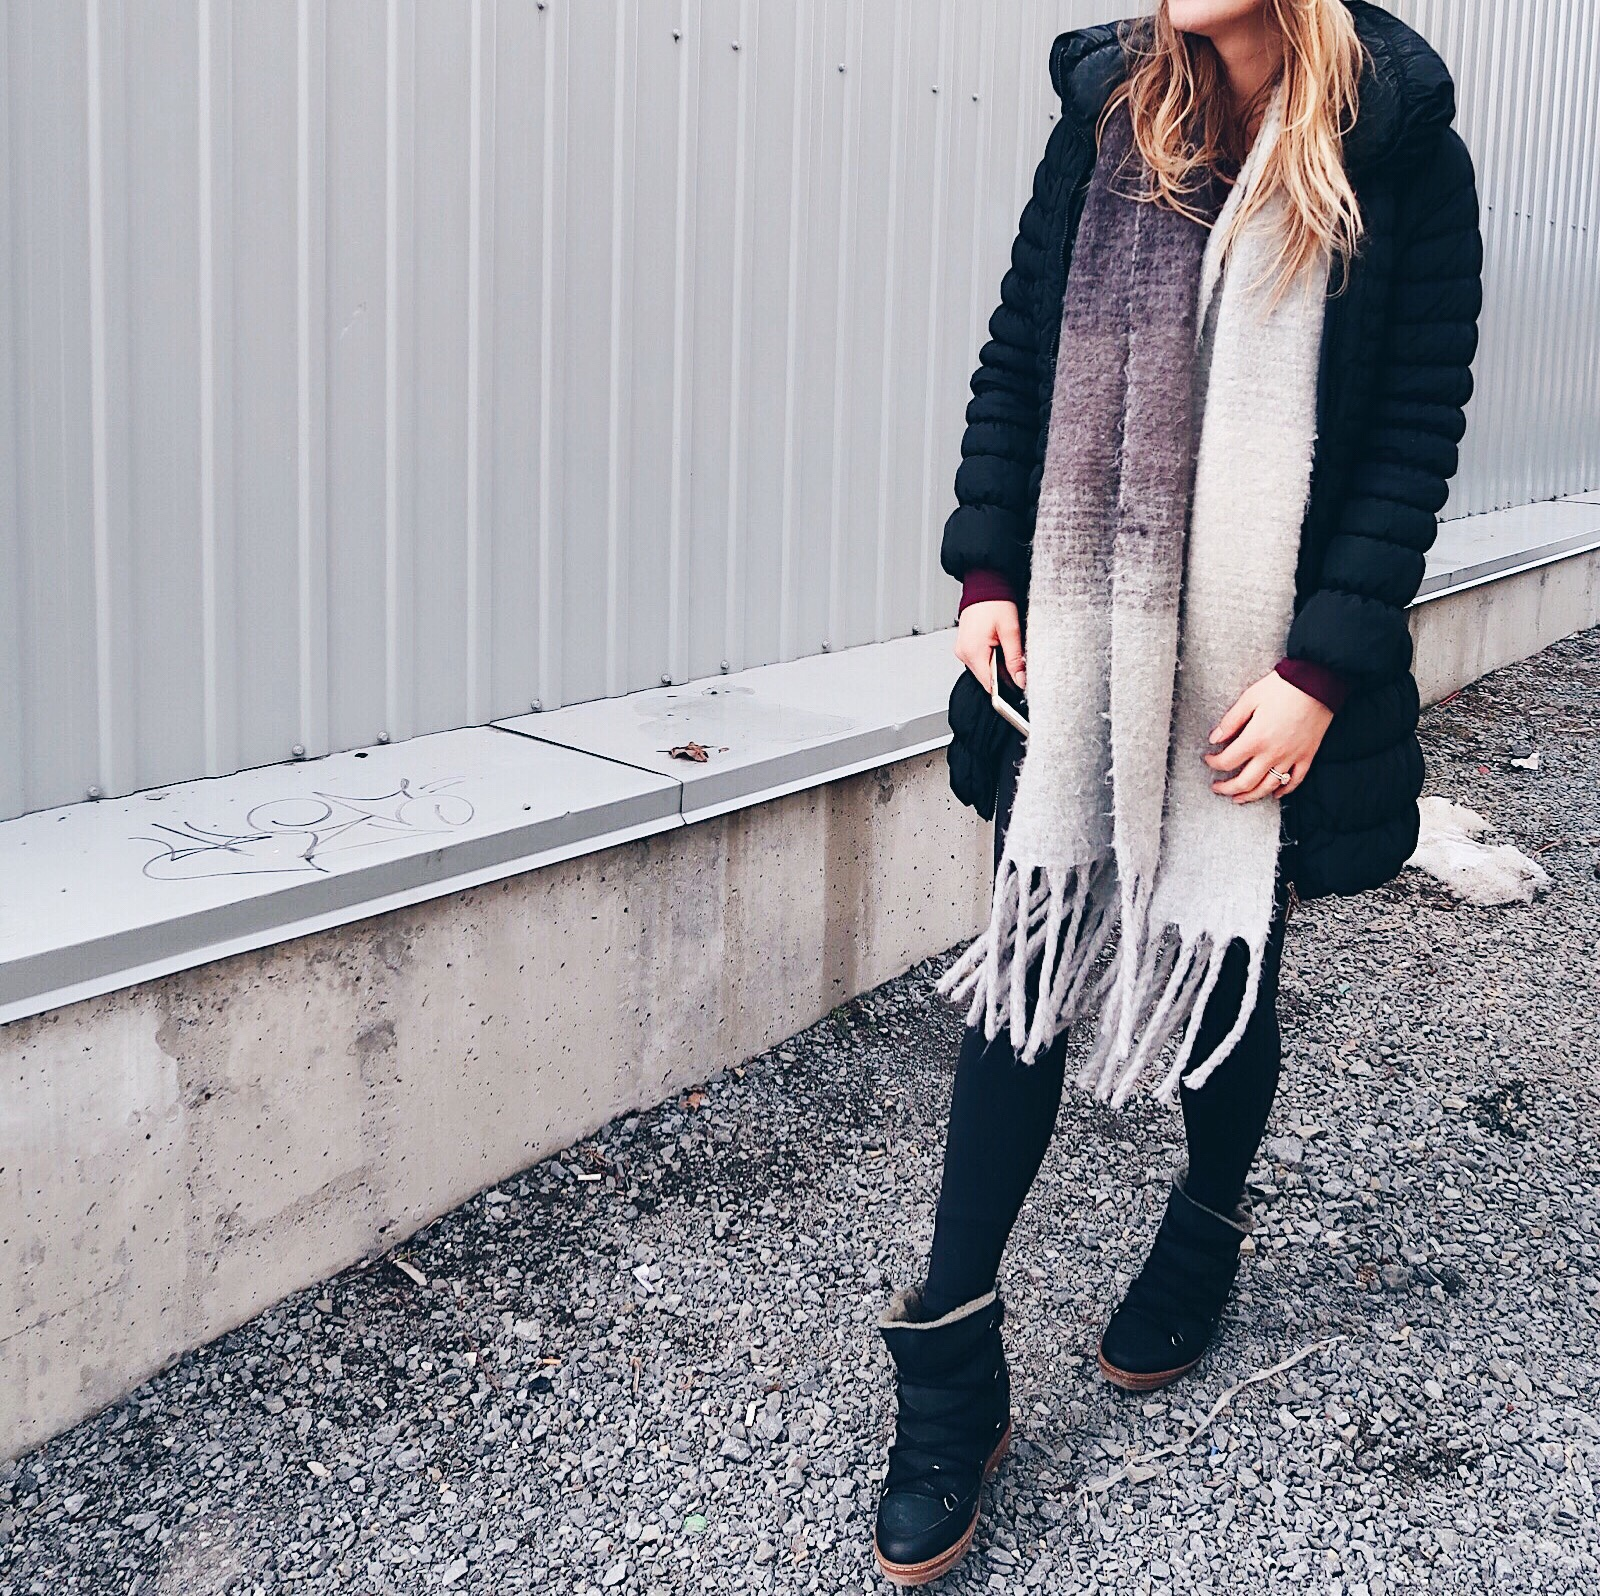 life with aco, weekend recap, grey scarf, isabel marant lace up boots winter outfit